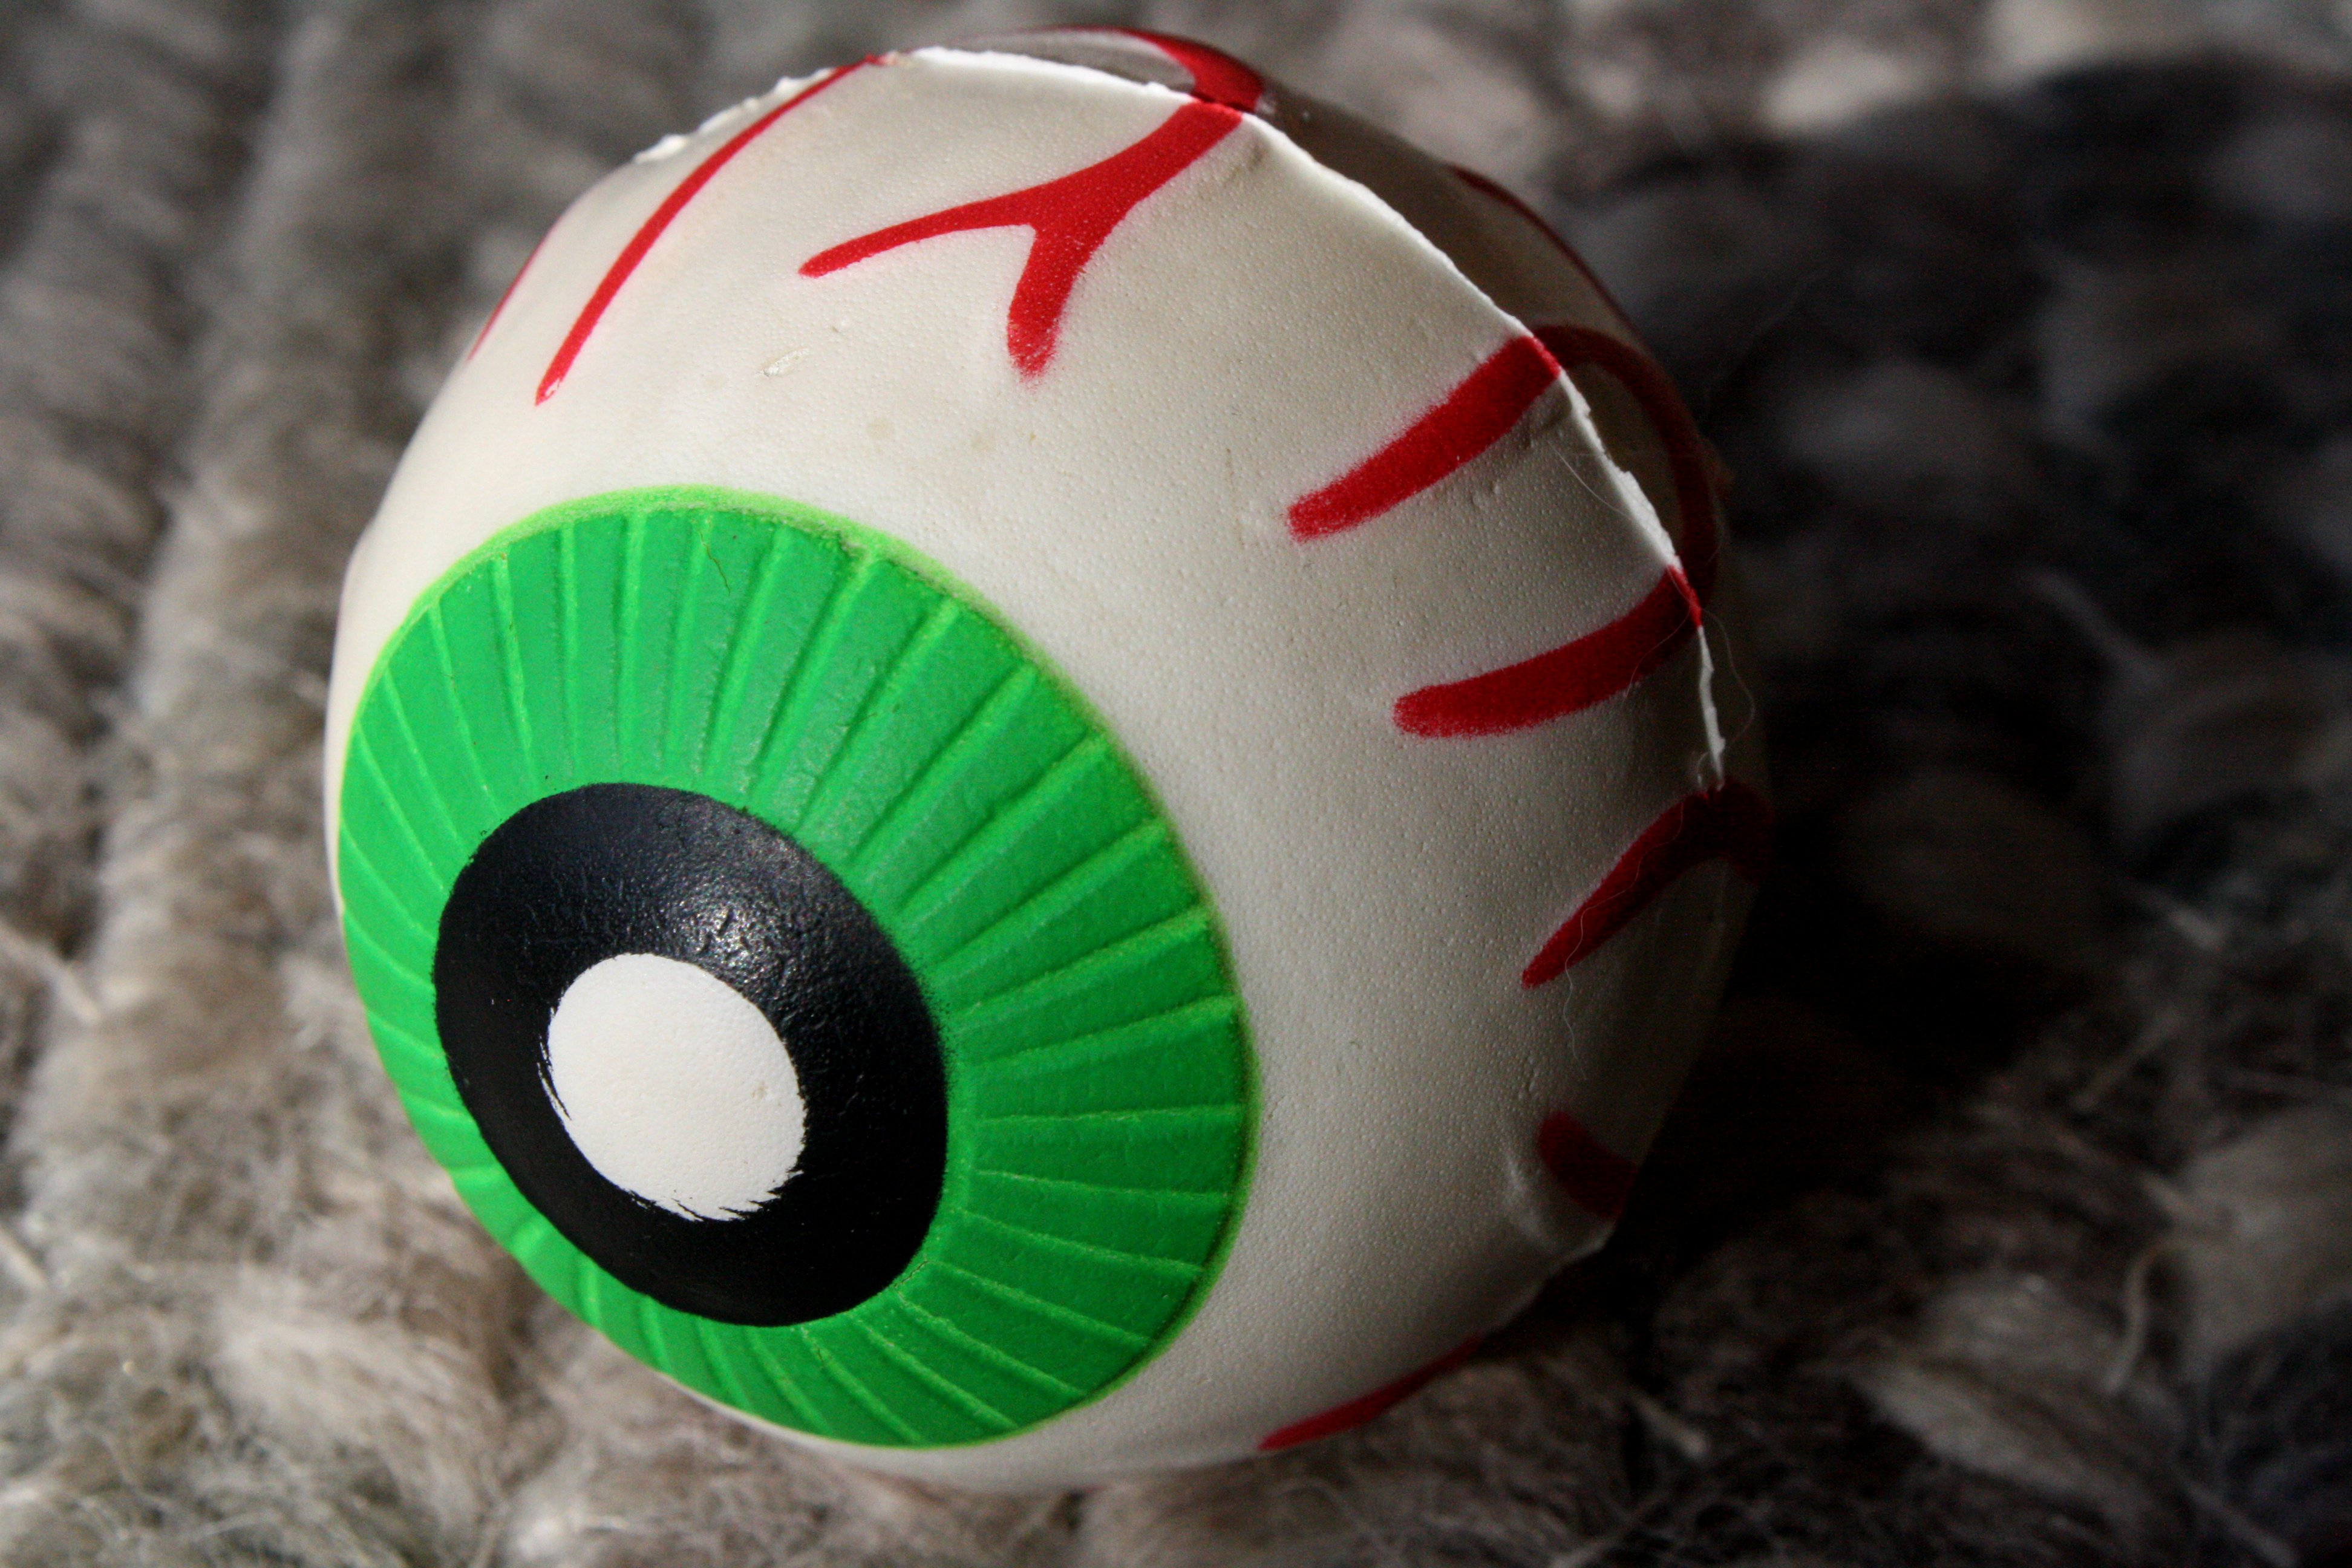 Eyeball Toy Picture Free Photograph Photos Public Domain